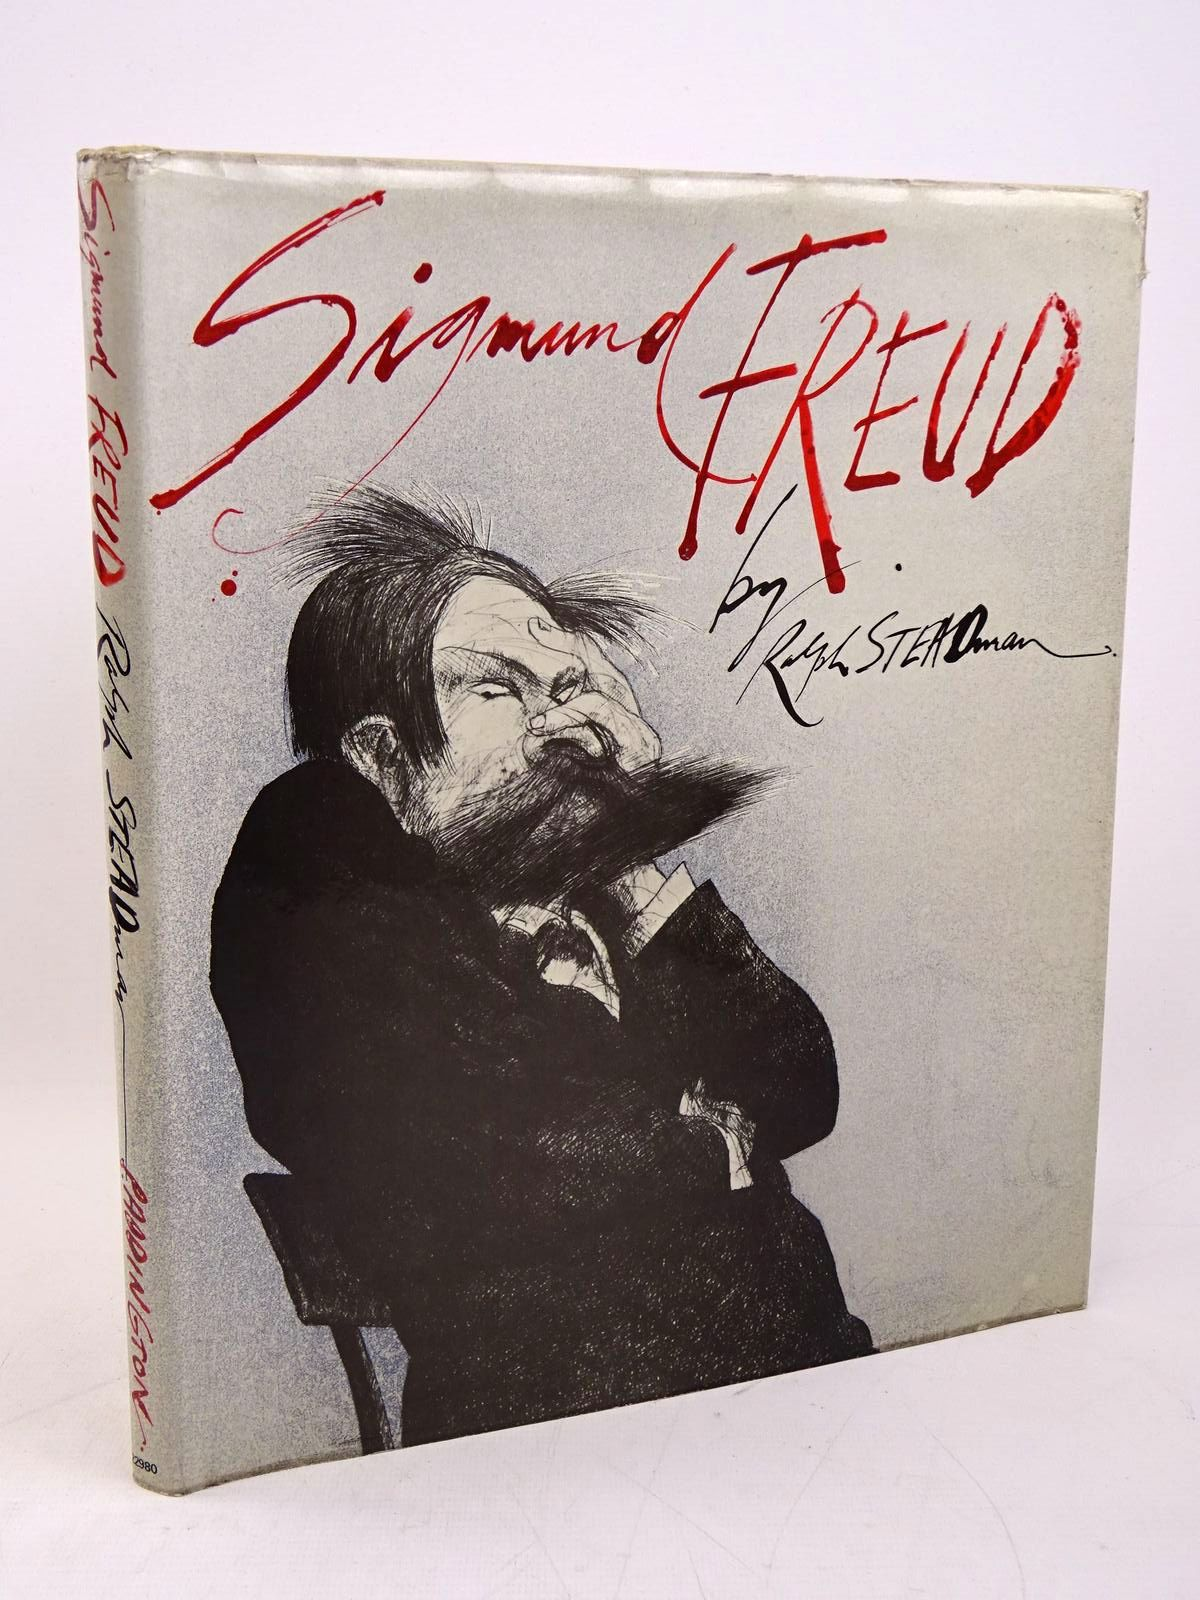 Photo of SIGMUND FREUD written by Steadman, Ralph illustrated by Steadman, Ralph published by Paddington Press (STOCK CODE: 1318017)  for sale by Stella & Rose's Books